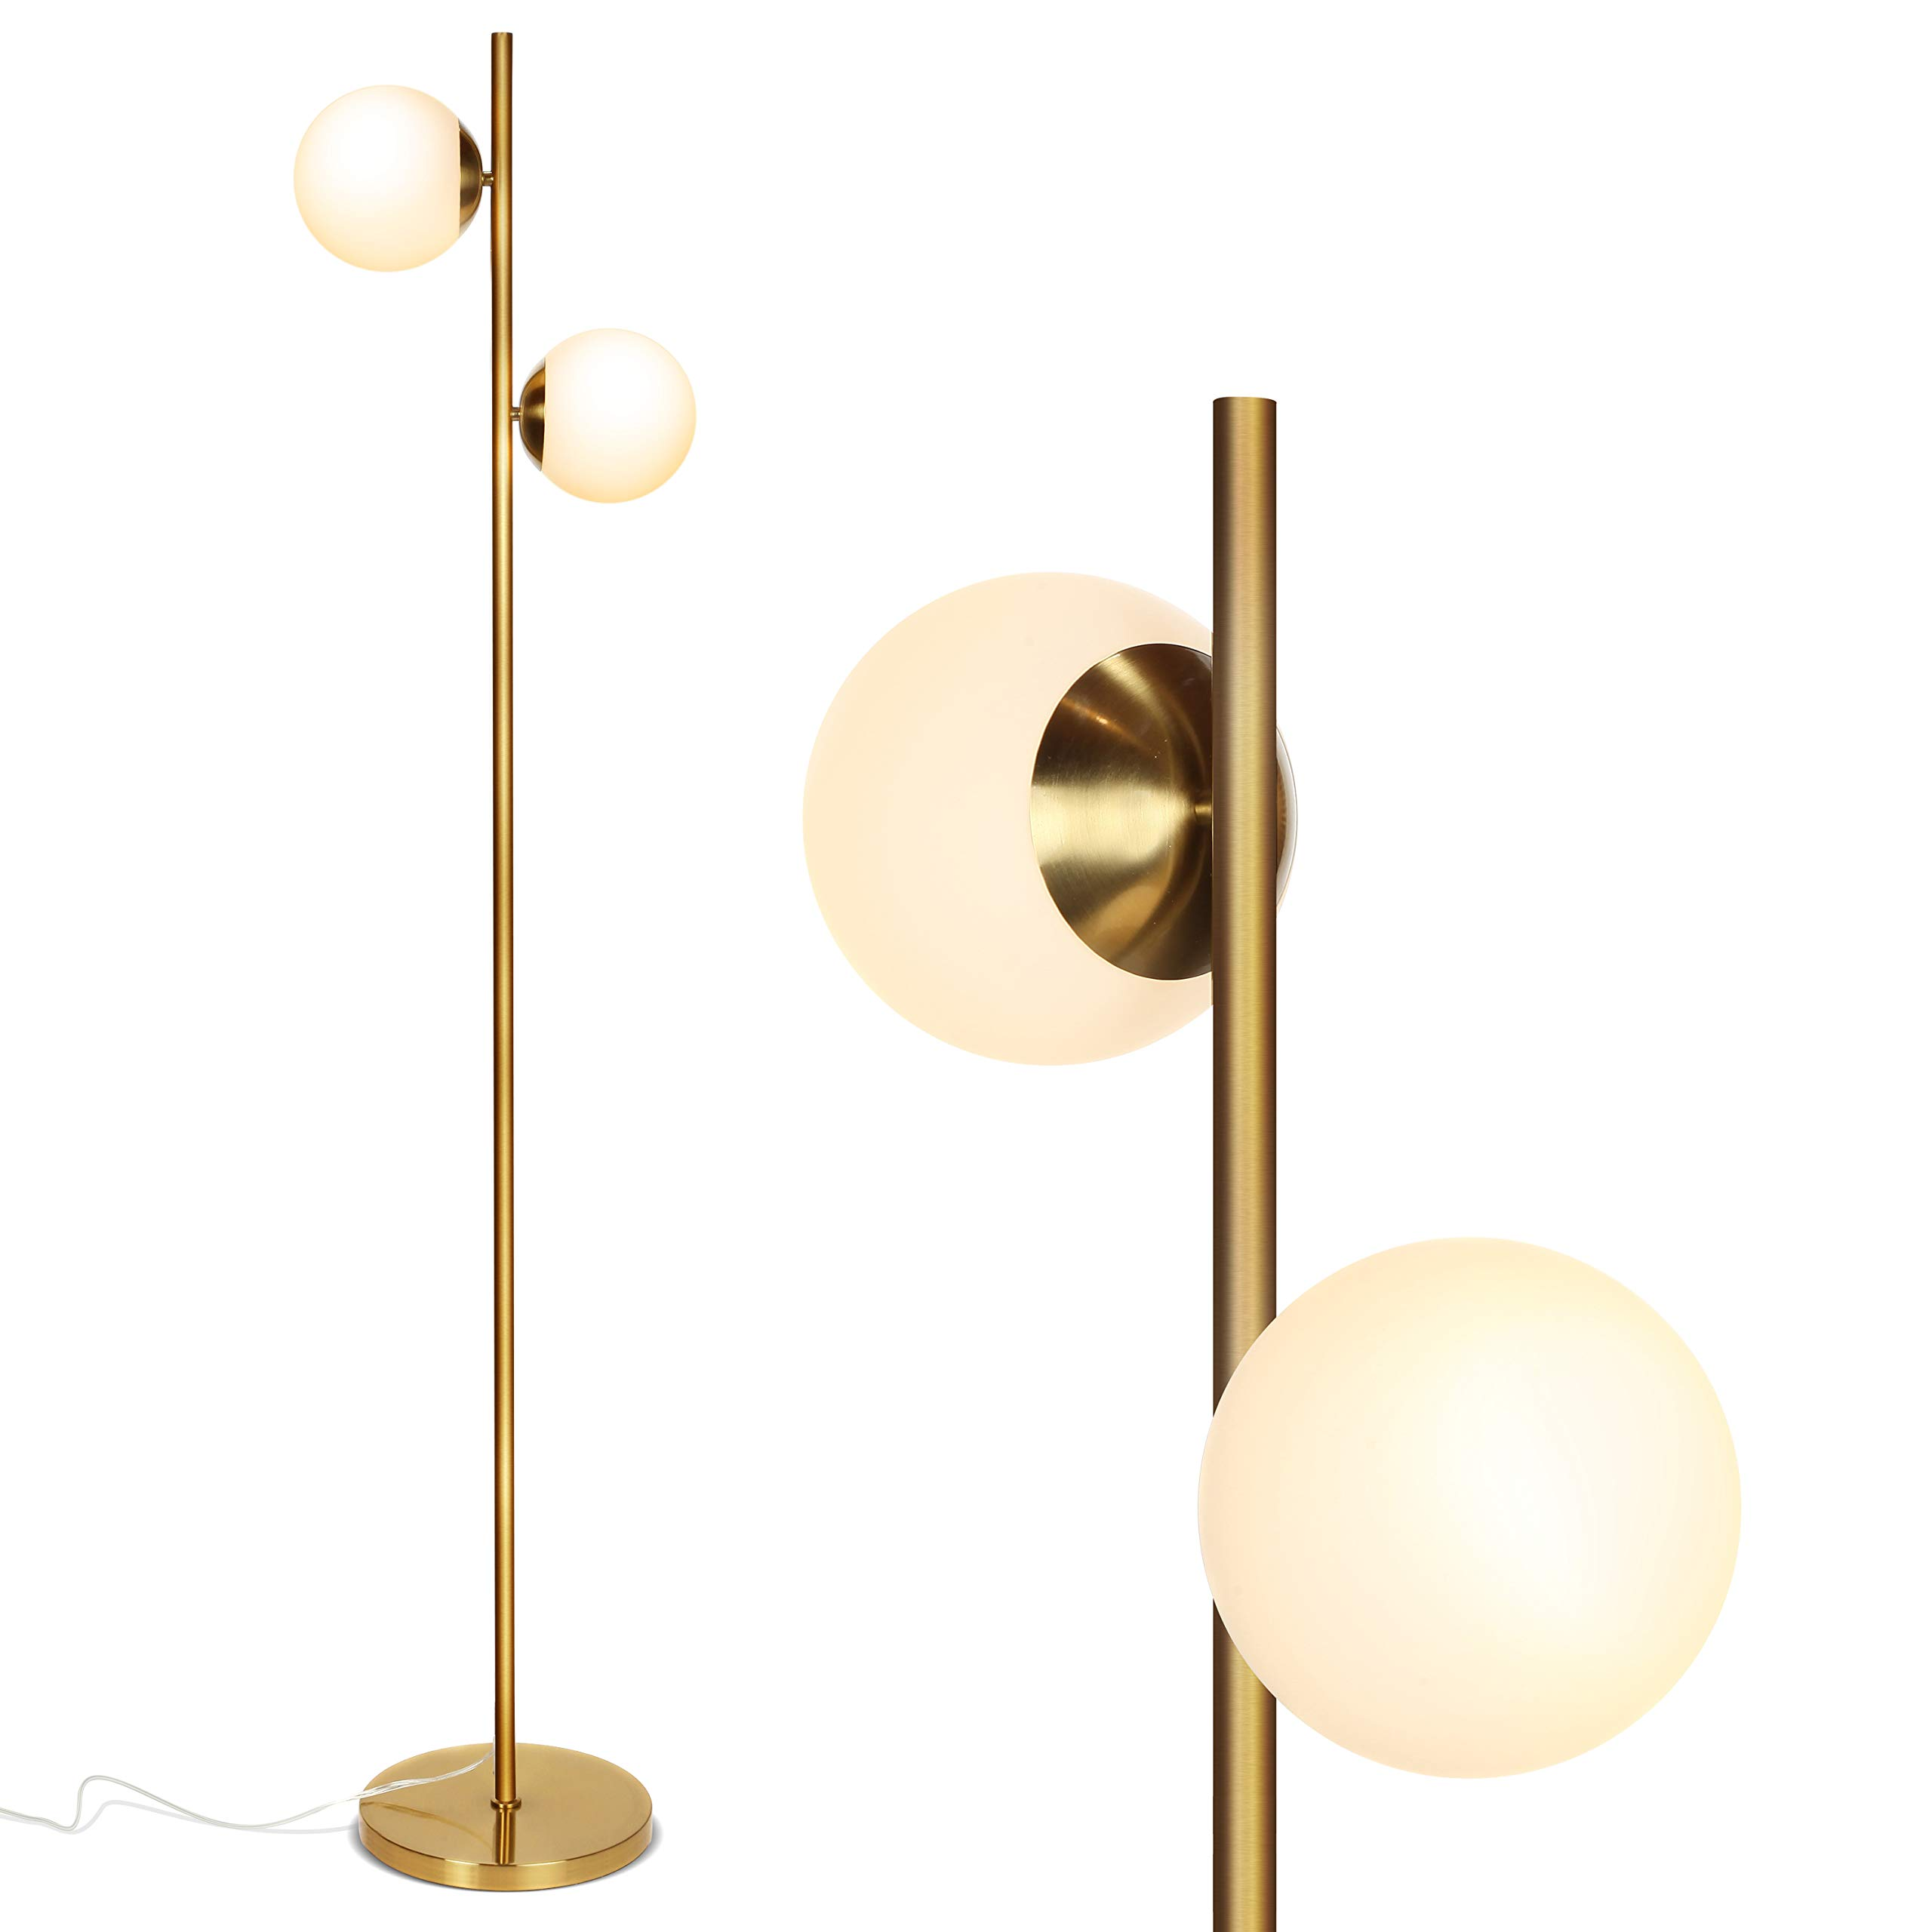 Brightech Sphere LED Floor Lamp- Contemporary Modern Frosted Glass Globe Lamp with Two Lights- Tall Pole Standing Uplight Lamp for Living Room, Den, Office, Bedroom- Bulbs Included- Antique Brass by Brightech